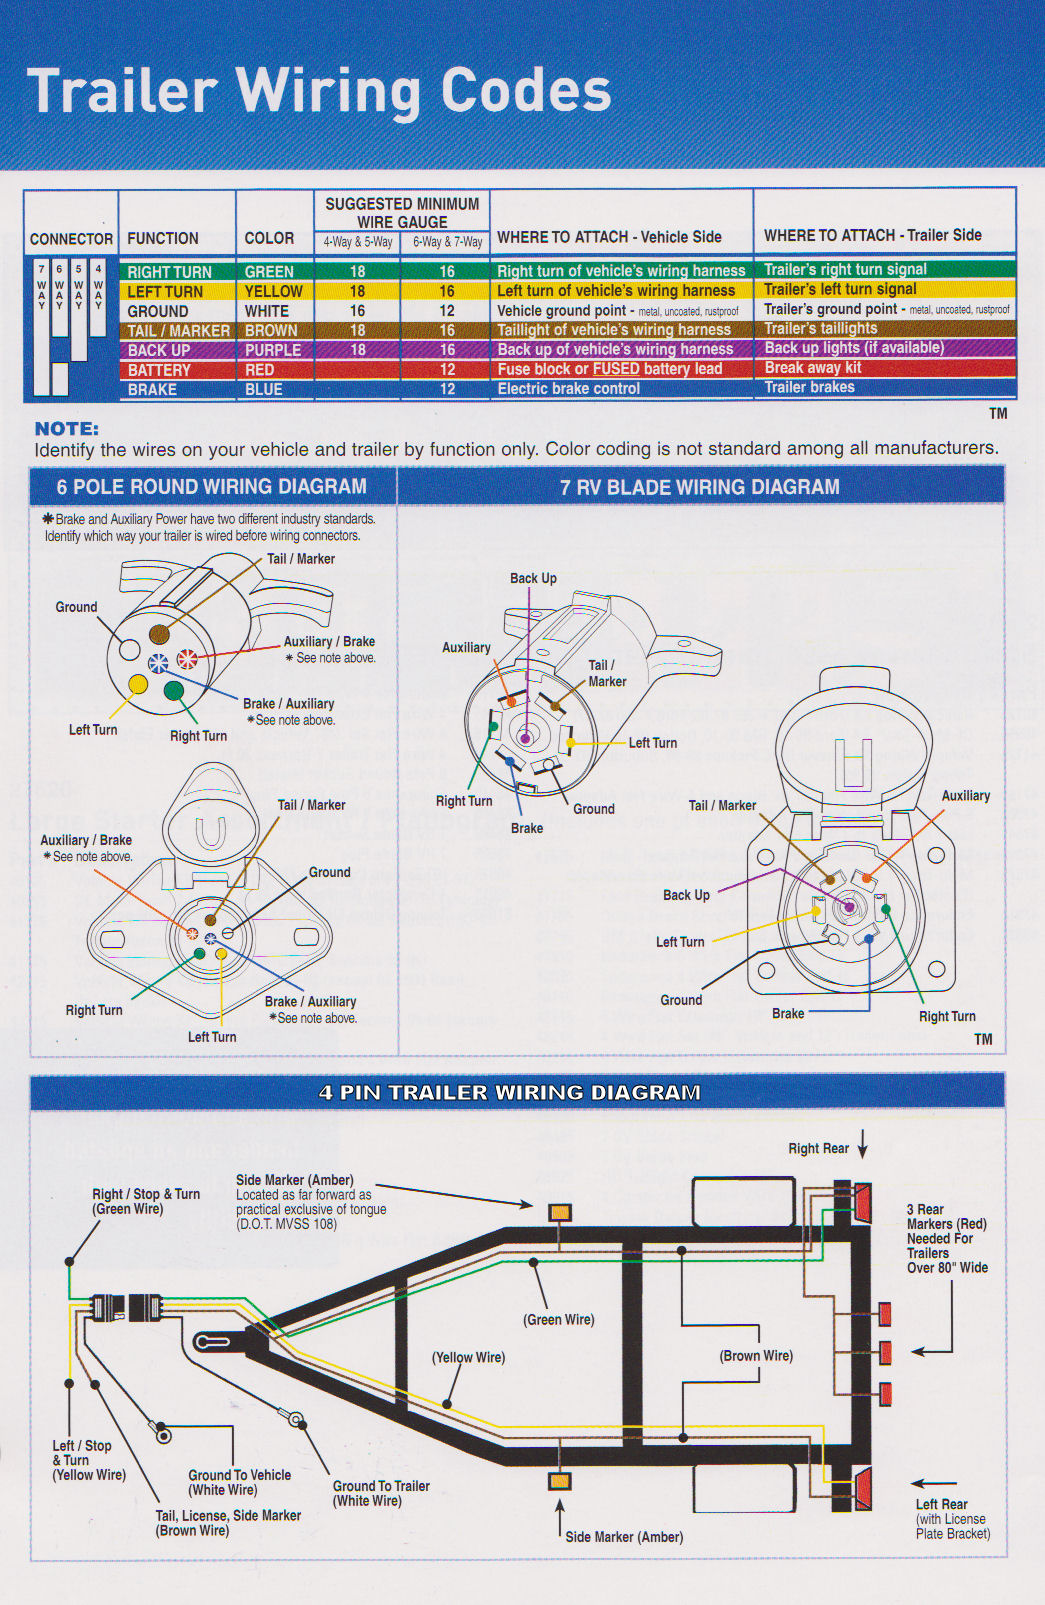 trailer wiring diagram trailers in denver co denver co trailer rh allamericandenver com Flatbed Semi-Trailer Schematic